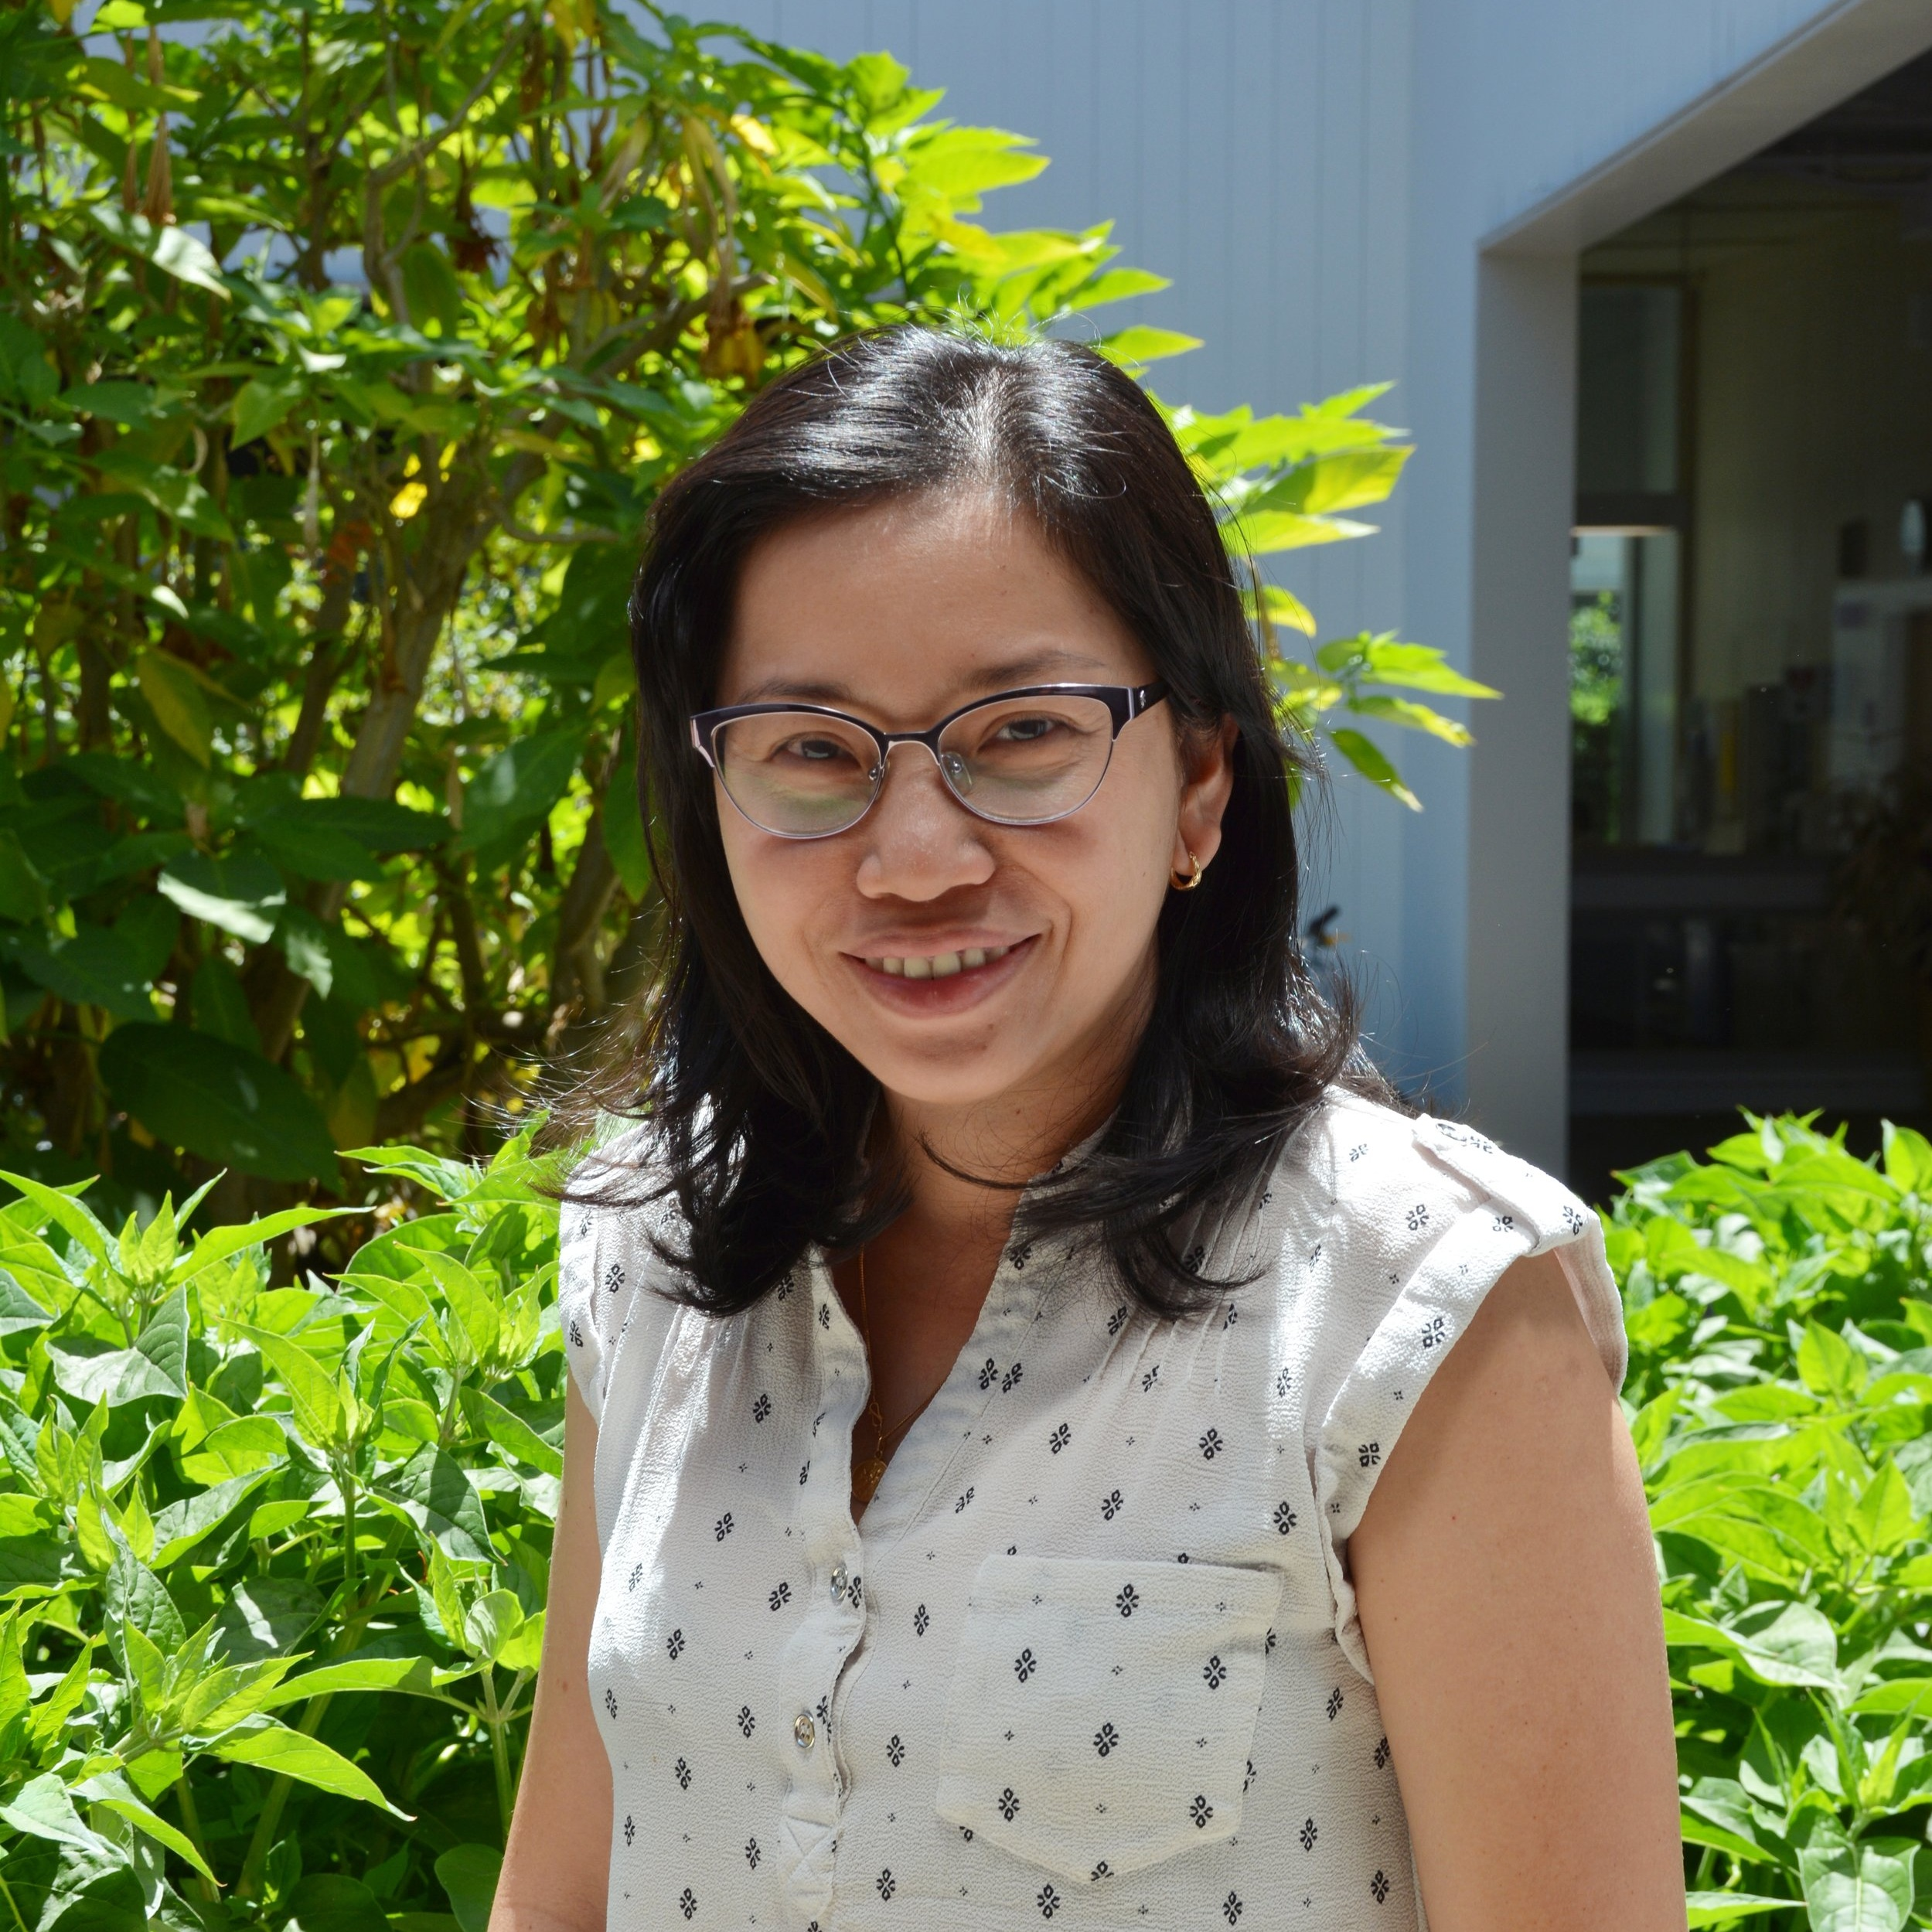 Lan Phuong Tran   Lan Phuong originally came to ICAN as a parent attending the workshops in 2016. She wanted her children to learn with friends their age before they began elementary school, and ICAN was the perfect place for that. She enjoys working with kids, and the staff was extremely helpful with everything from the start, leading her to join ICAN as a volunteer in 2017 and then a part-time Children's Program Coordinator in early 2019. Her favorite part of working at ICAN is seeing how excited the parents are when attending the workshops with their kids. In her free time, she likes going to the library, the park, going to Legoland for vacation, and shopping.